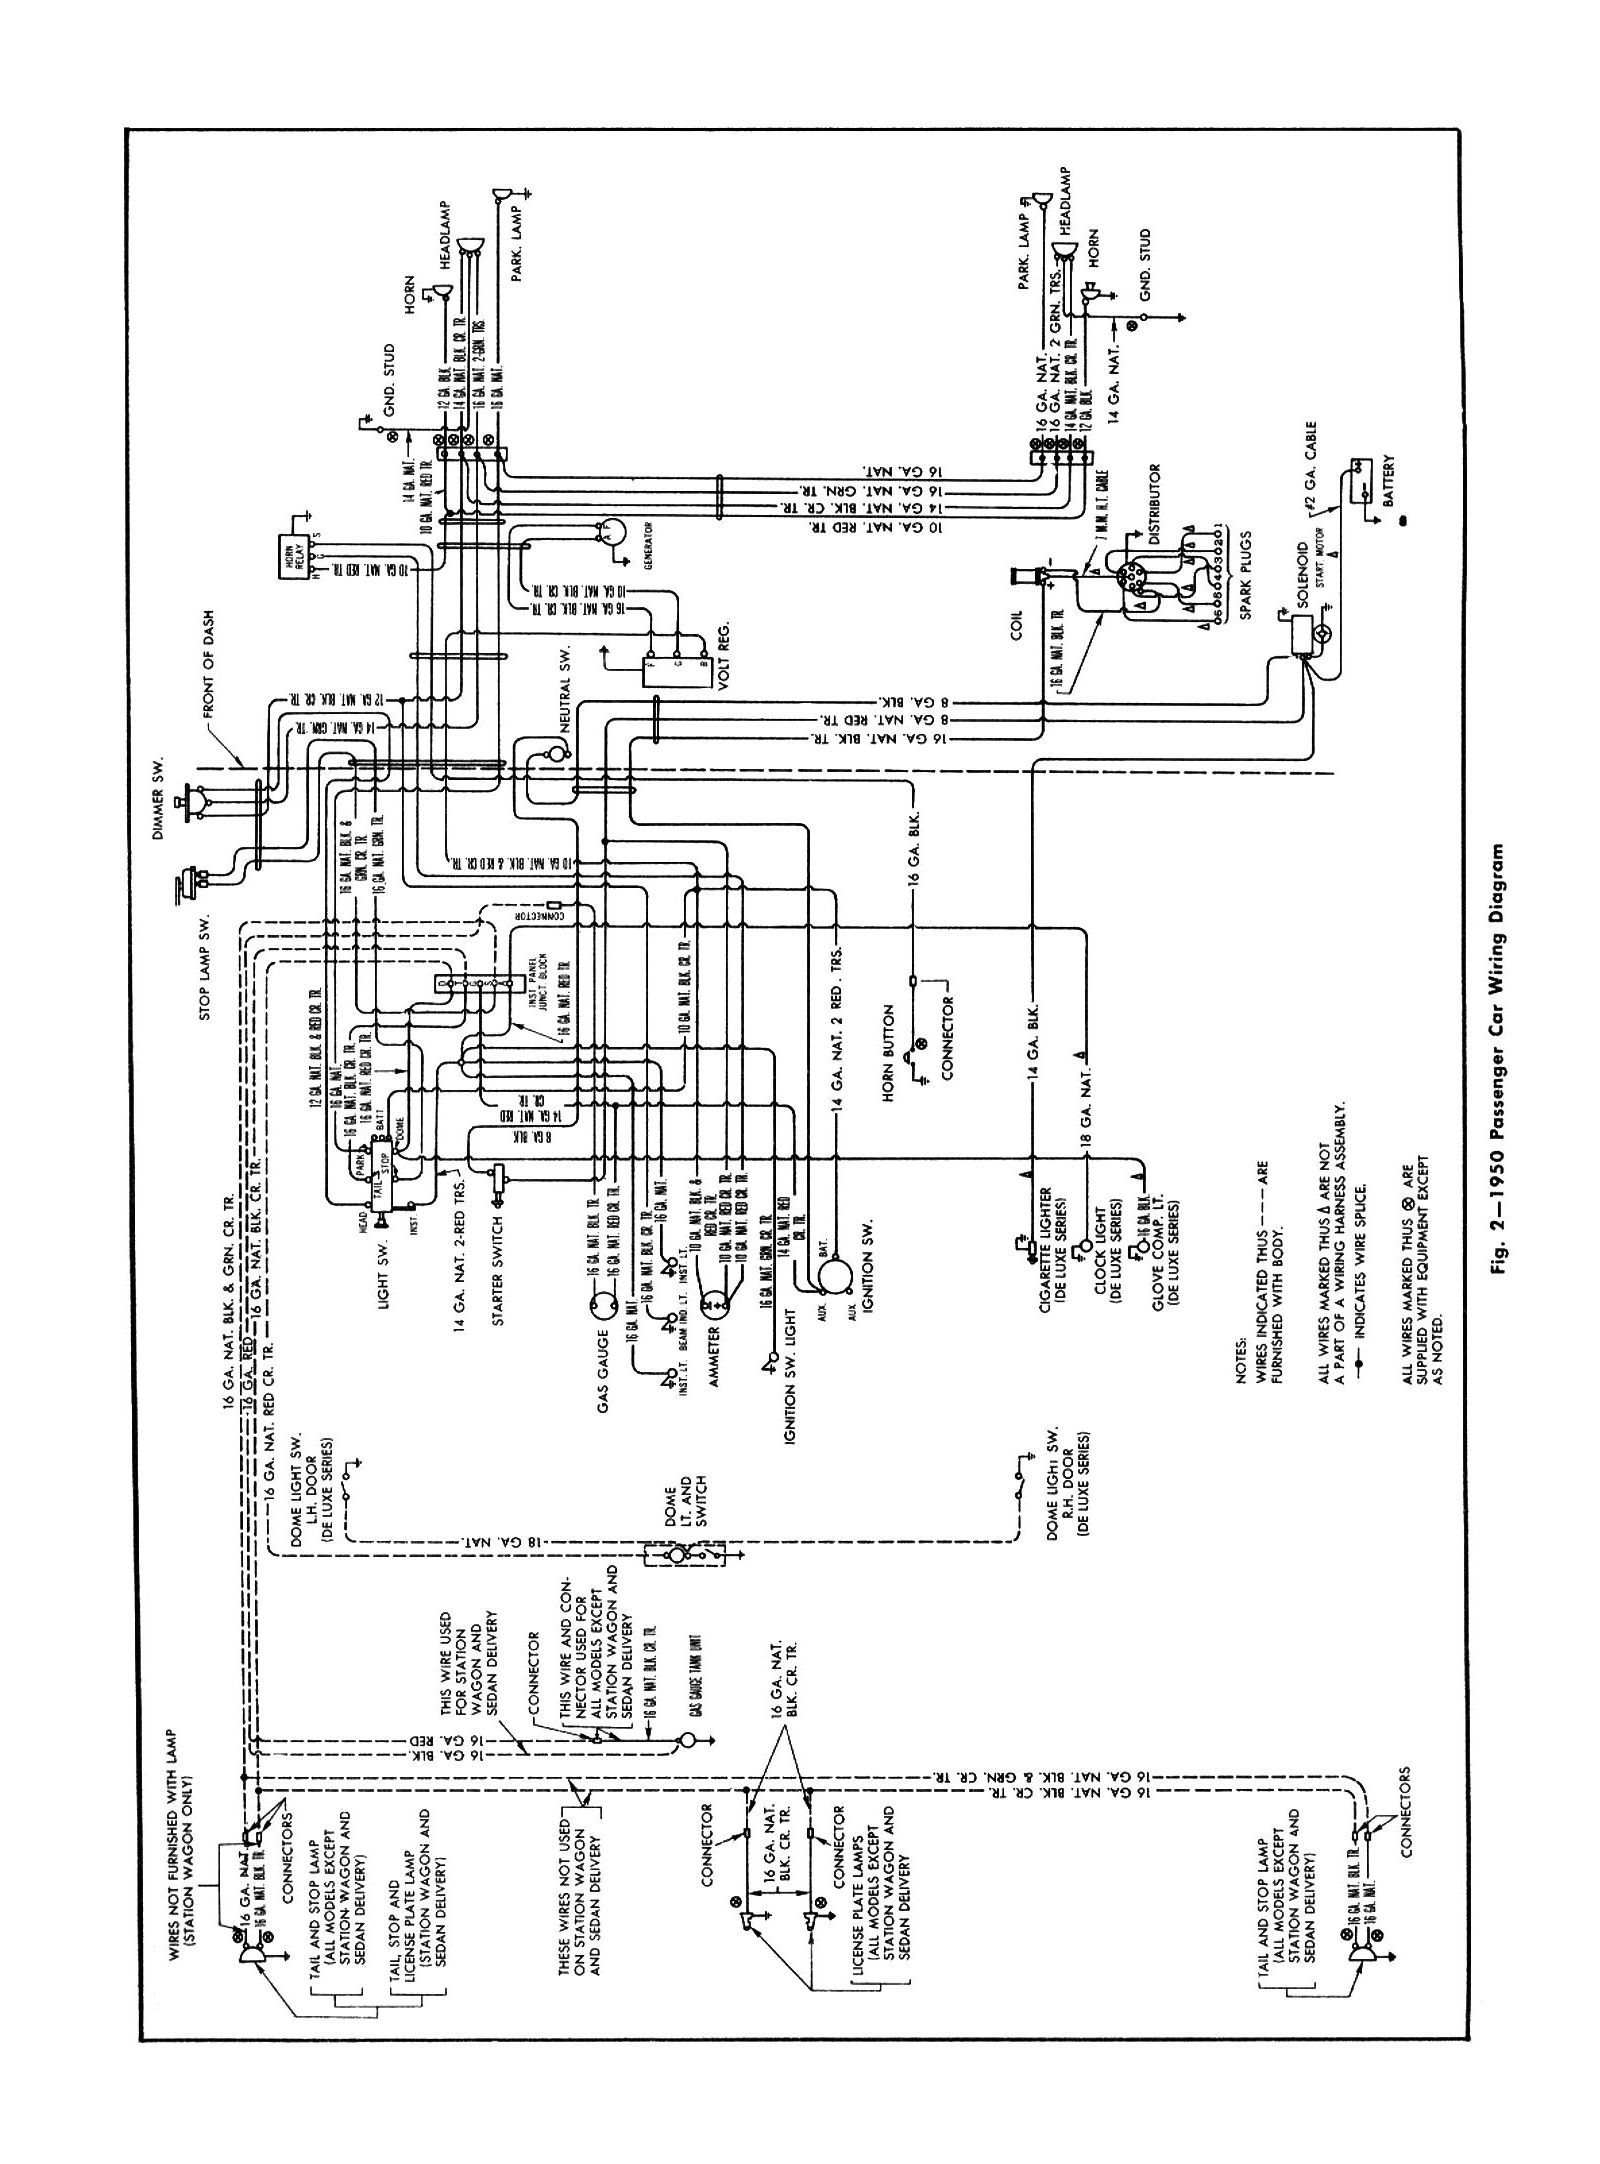 International Wiring Diagrams | Wiring Diagram Database on navistar 7.3 diagram, sterling trucks electrical diagrams, model engine glow plug diagrams, ezgo golf cart parts diagrams, international navistar parts diagrams, 1996 ezgo gas electrical diagrams, international trucks specs diagrams, international truck electrical diagrams, sterling air switch diagrams, international dt 466 engines diagrams, scout ii diagrams, 7.3 ford diesel diagrams,